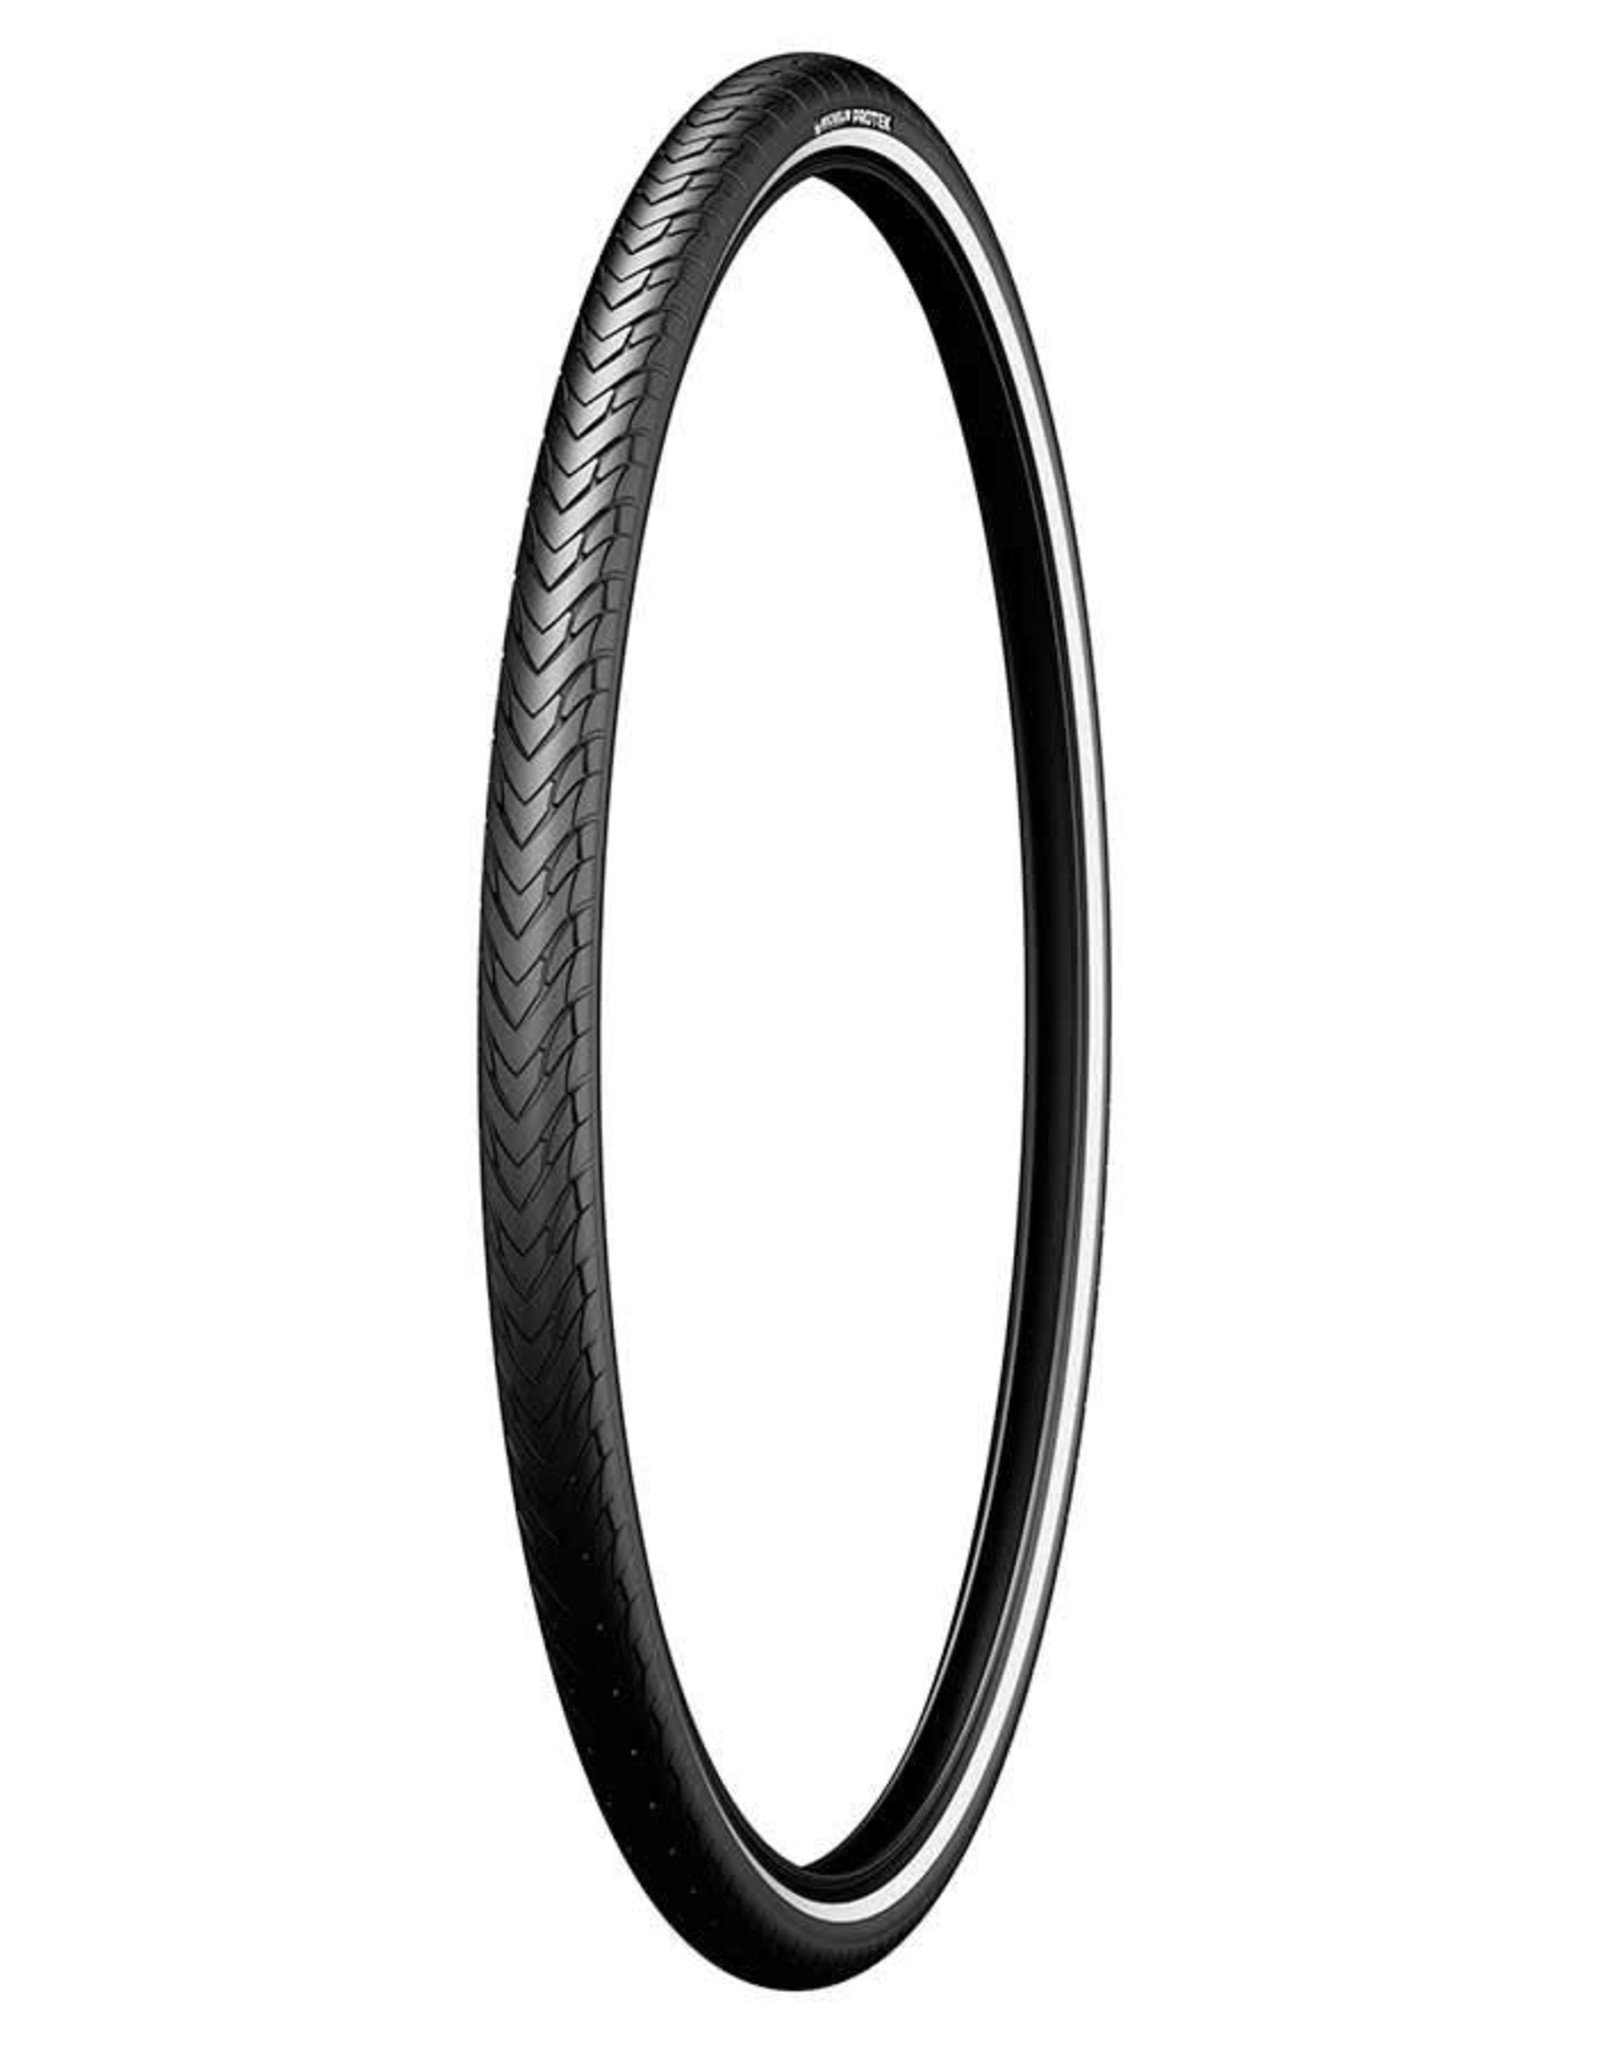 MICHELIN Michelin, Protek, Tire, 700x28C, Wire, Clincher, Protek 1mm, Reflex, 22TPI, Black